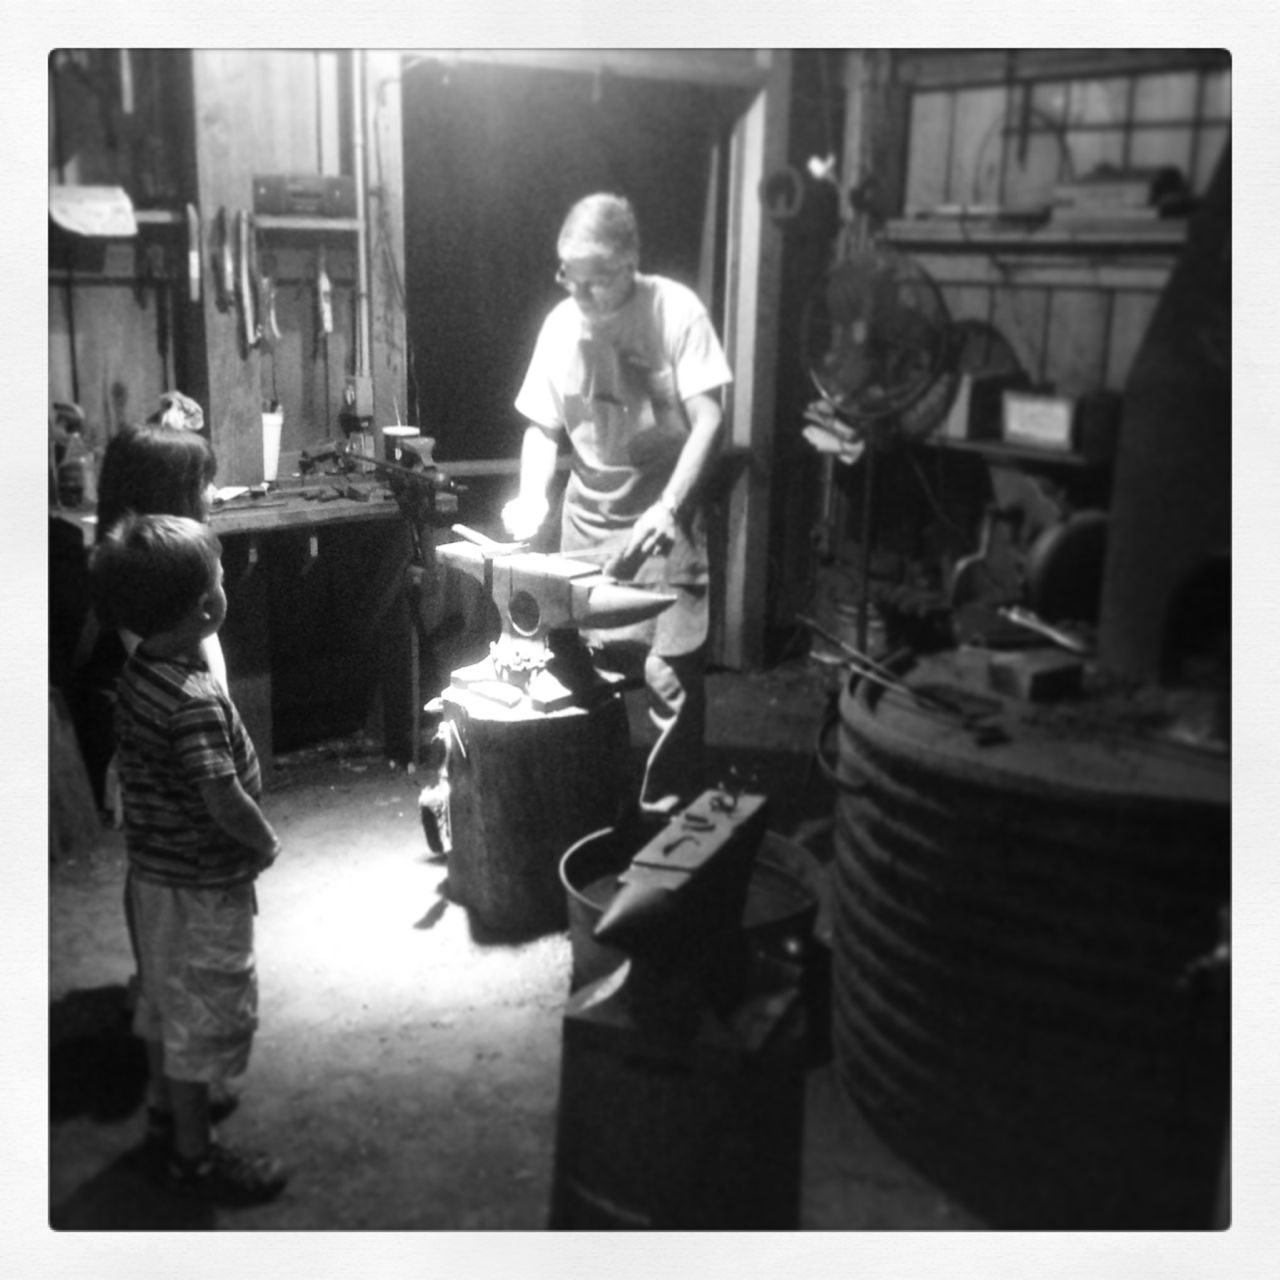 The blacksmith giving lessons to the kids...